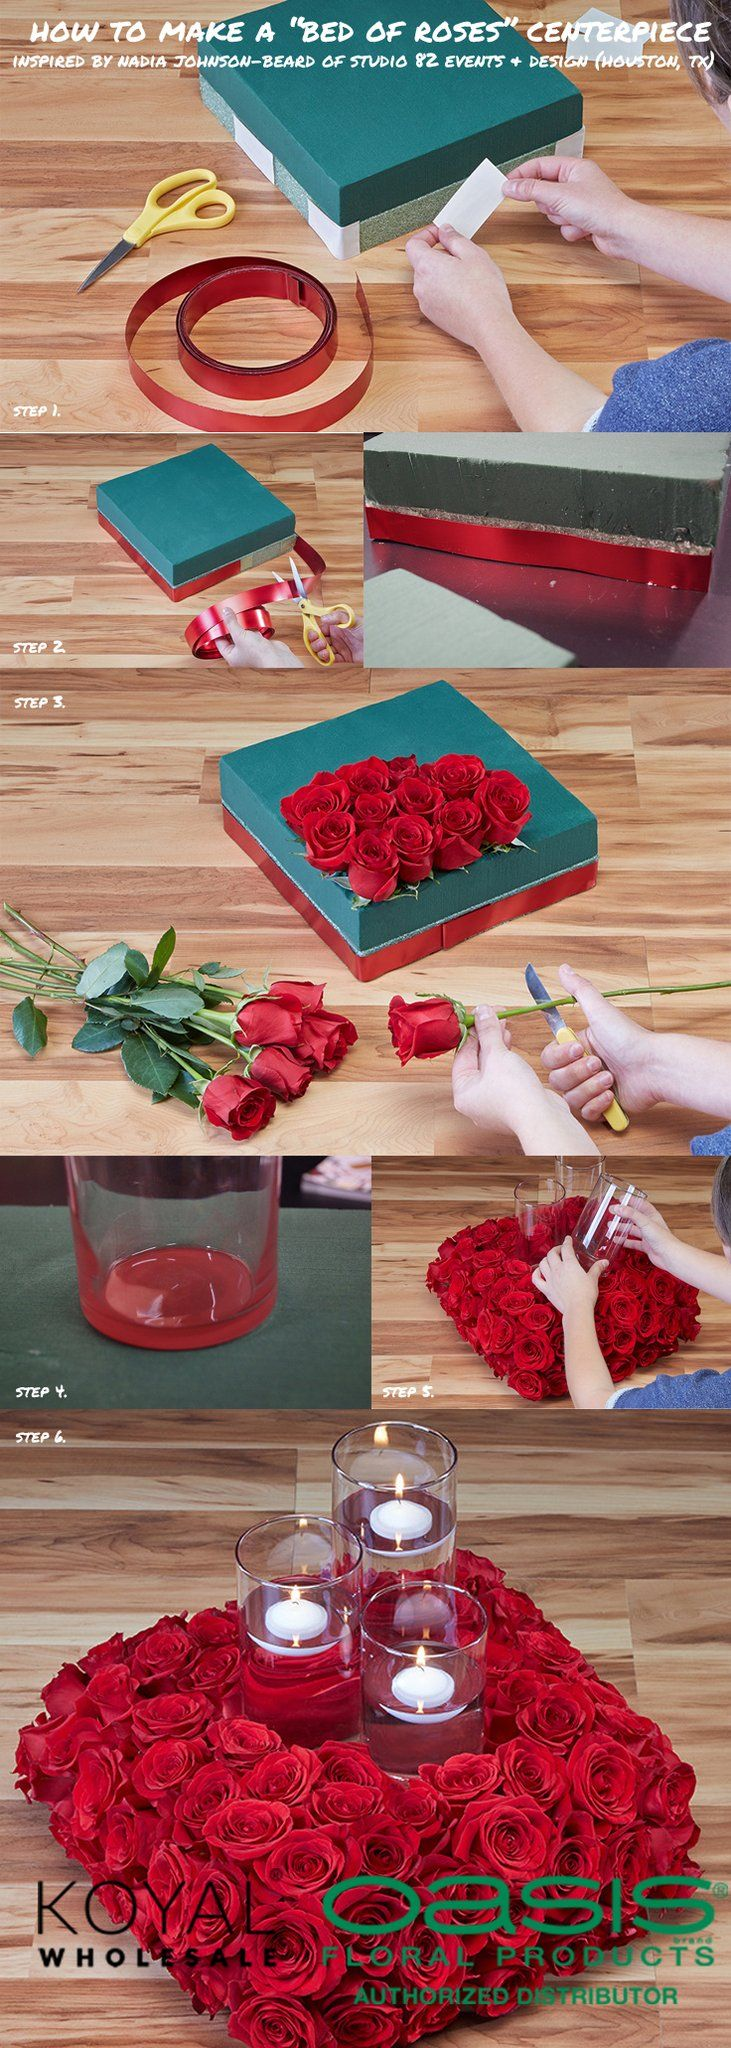 How To Make A Bed Of Roses Floating Candle Wedding Centerpiece, Display Idea